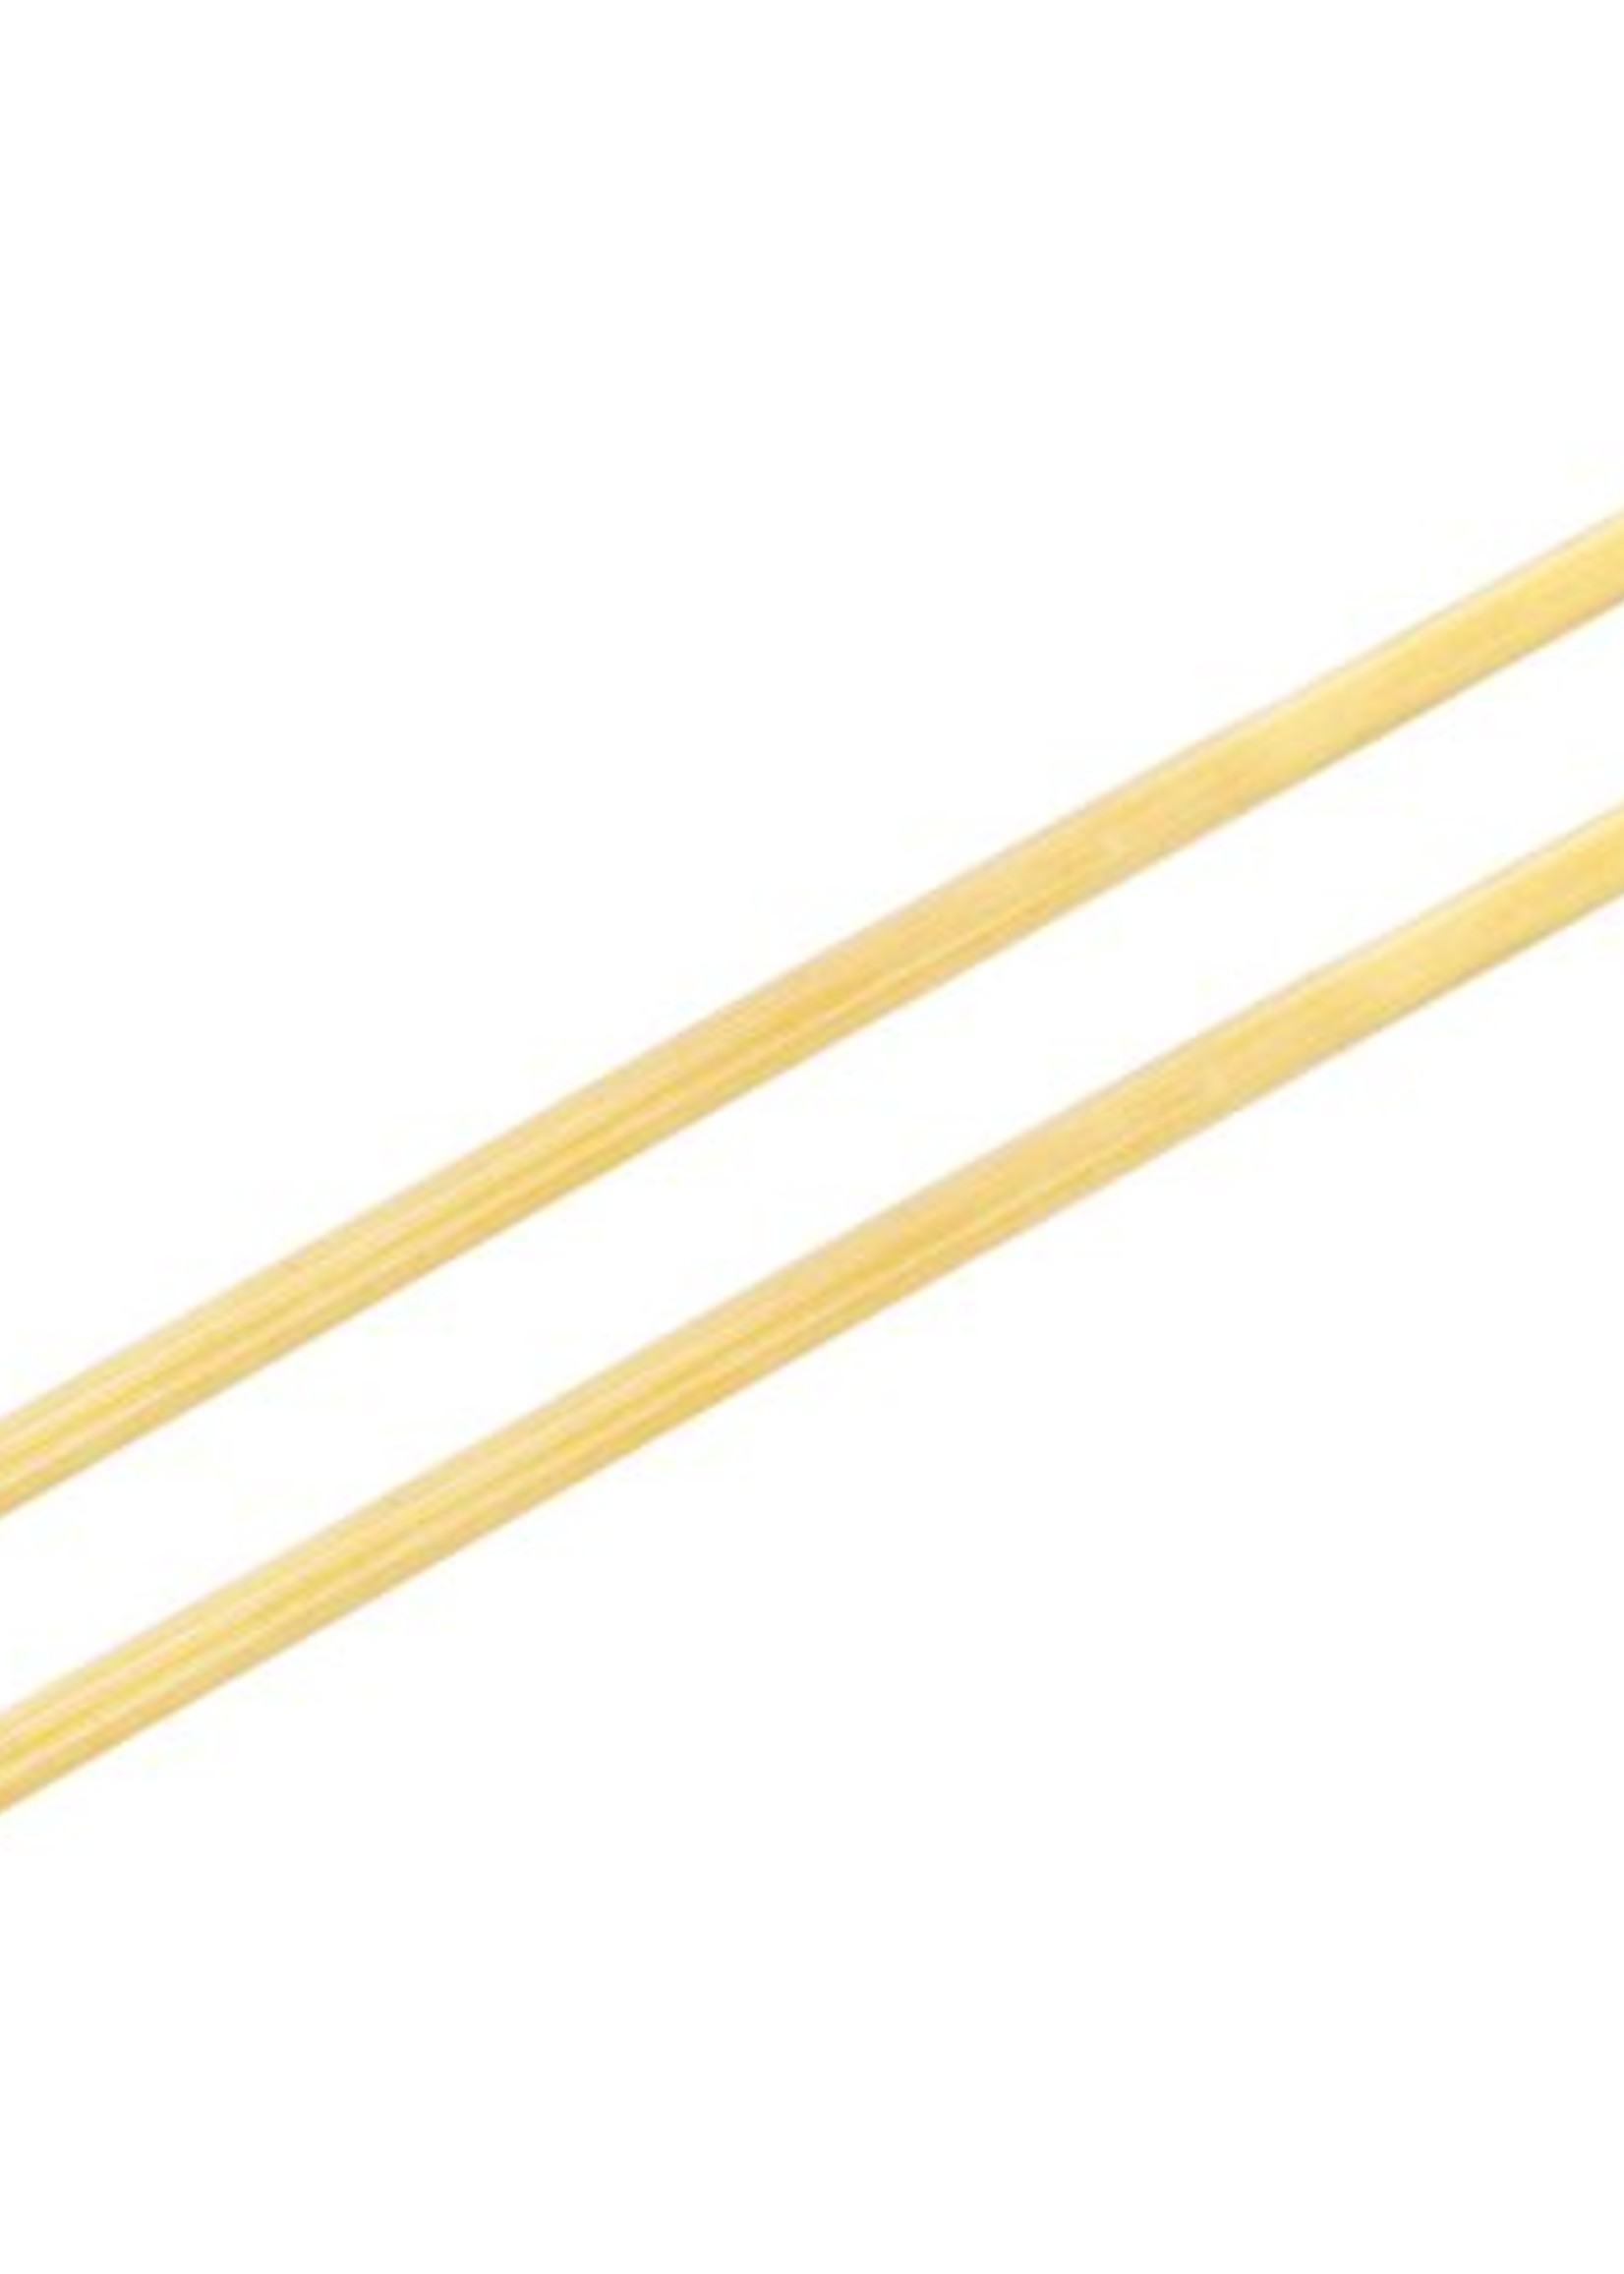 Knitter's Pride KP-Bamboo Single Point